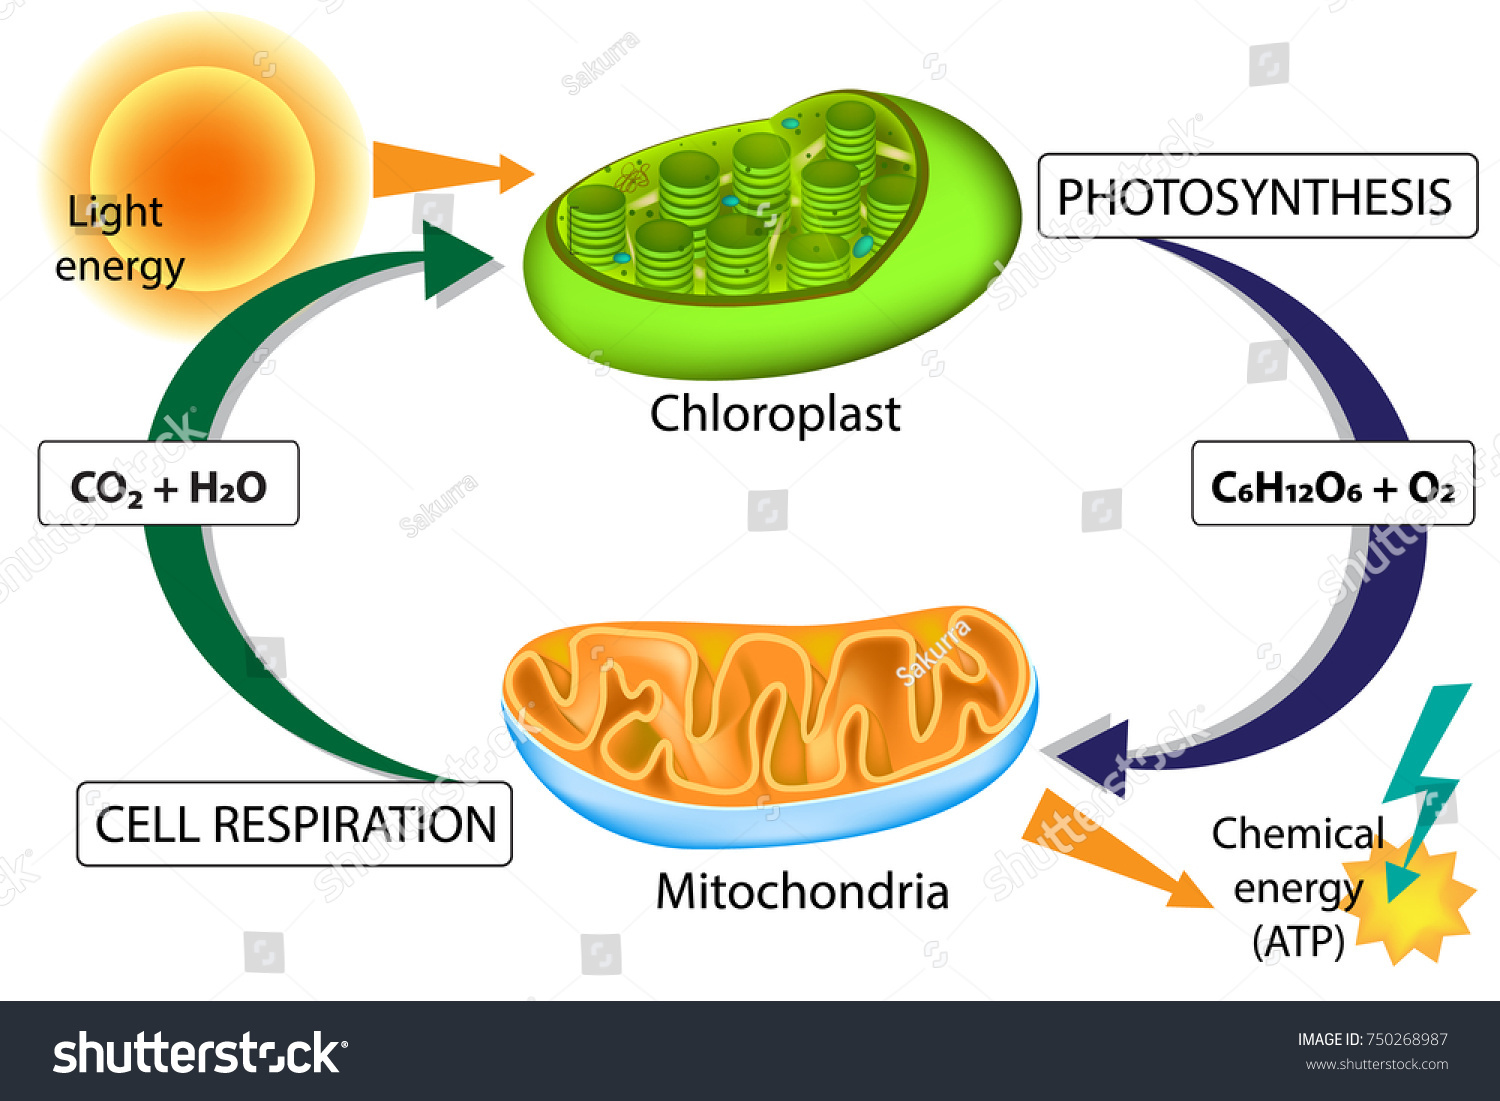 Photosynthesis Cellular Respiration Chloroplast Mitochondria Stock Vector 750268987